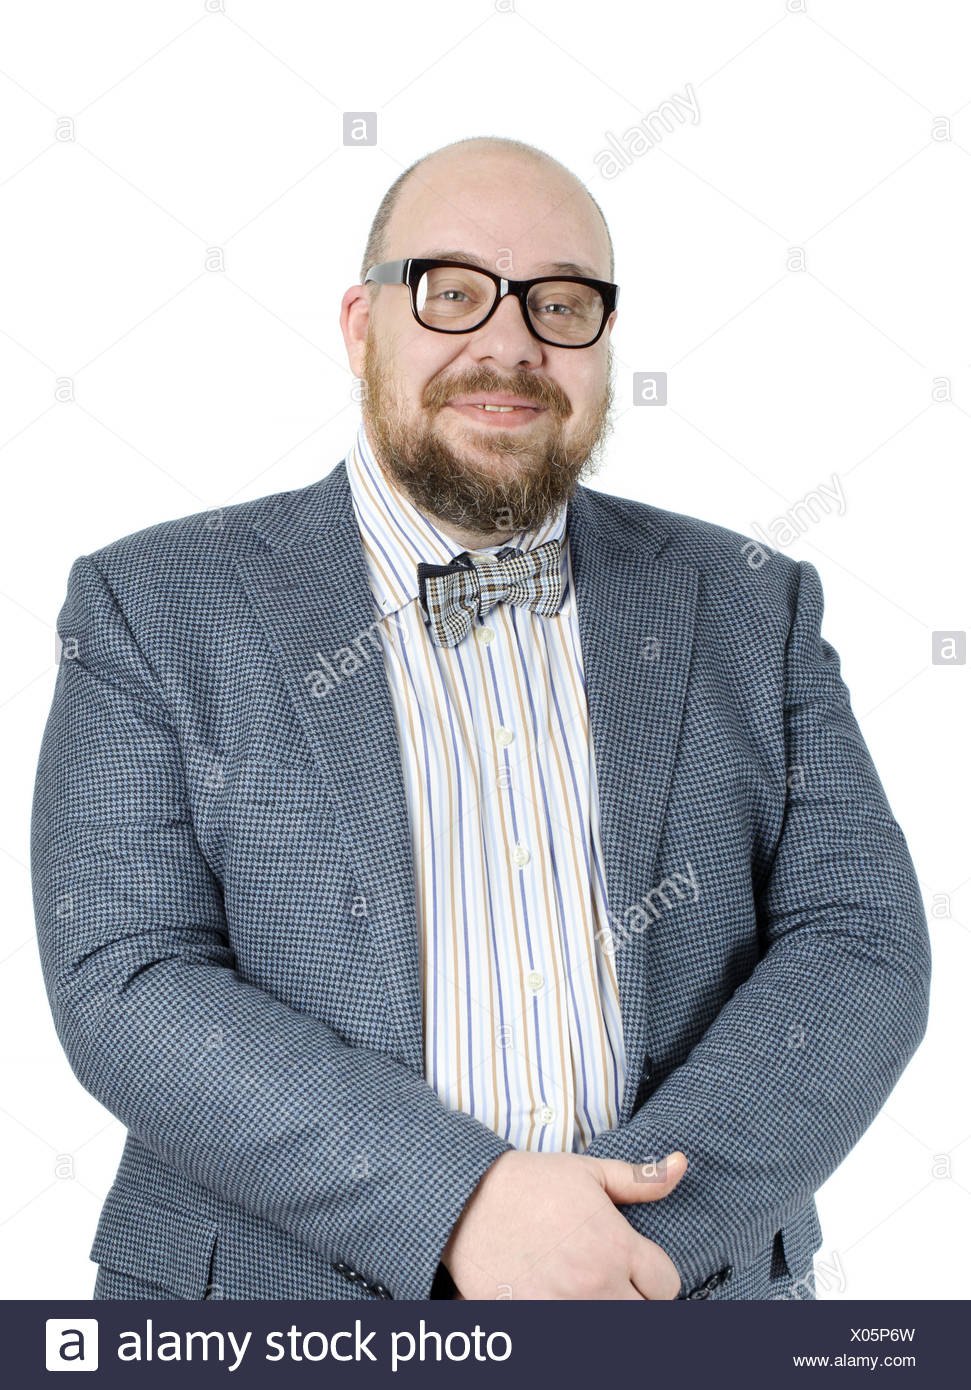 Smiling bearded man in a full jacket. - Stock Image